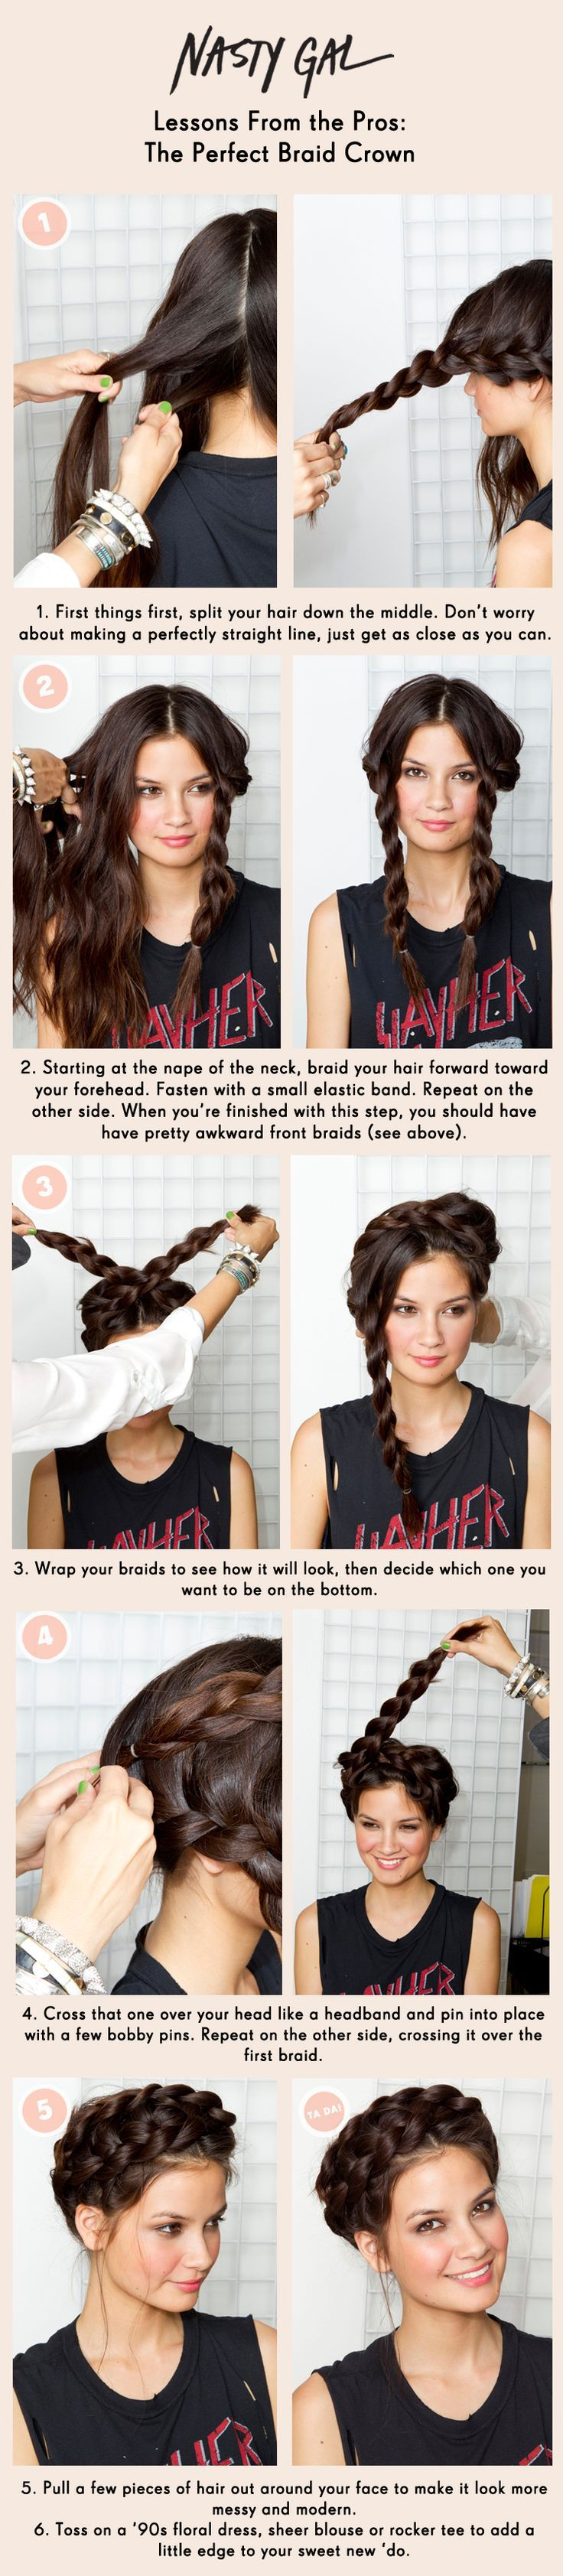 507 Best Images About Hairstyles Of The Fine & Thin On Pinterest  Hair  Romance, Chignons And Buns